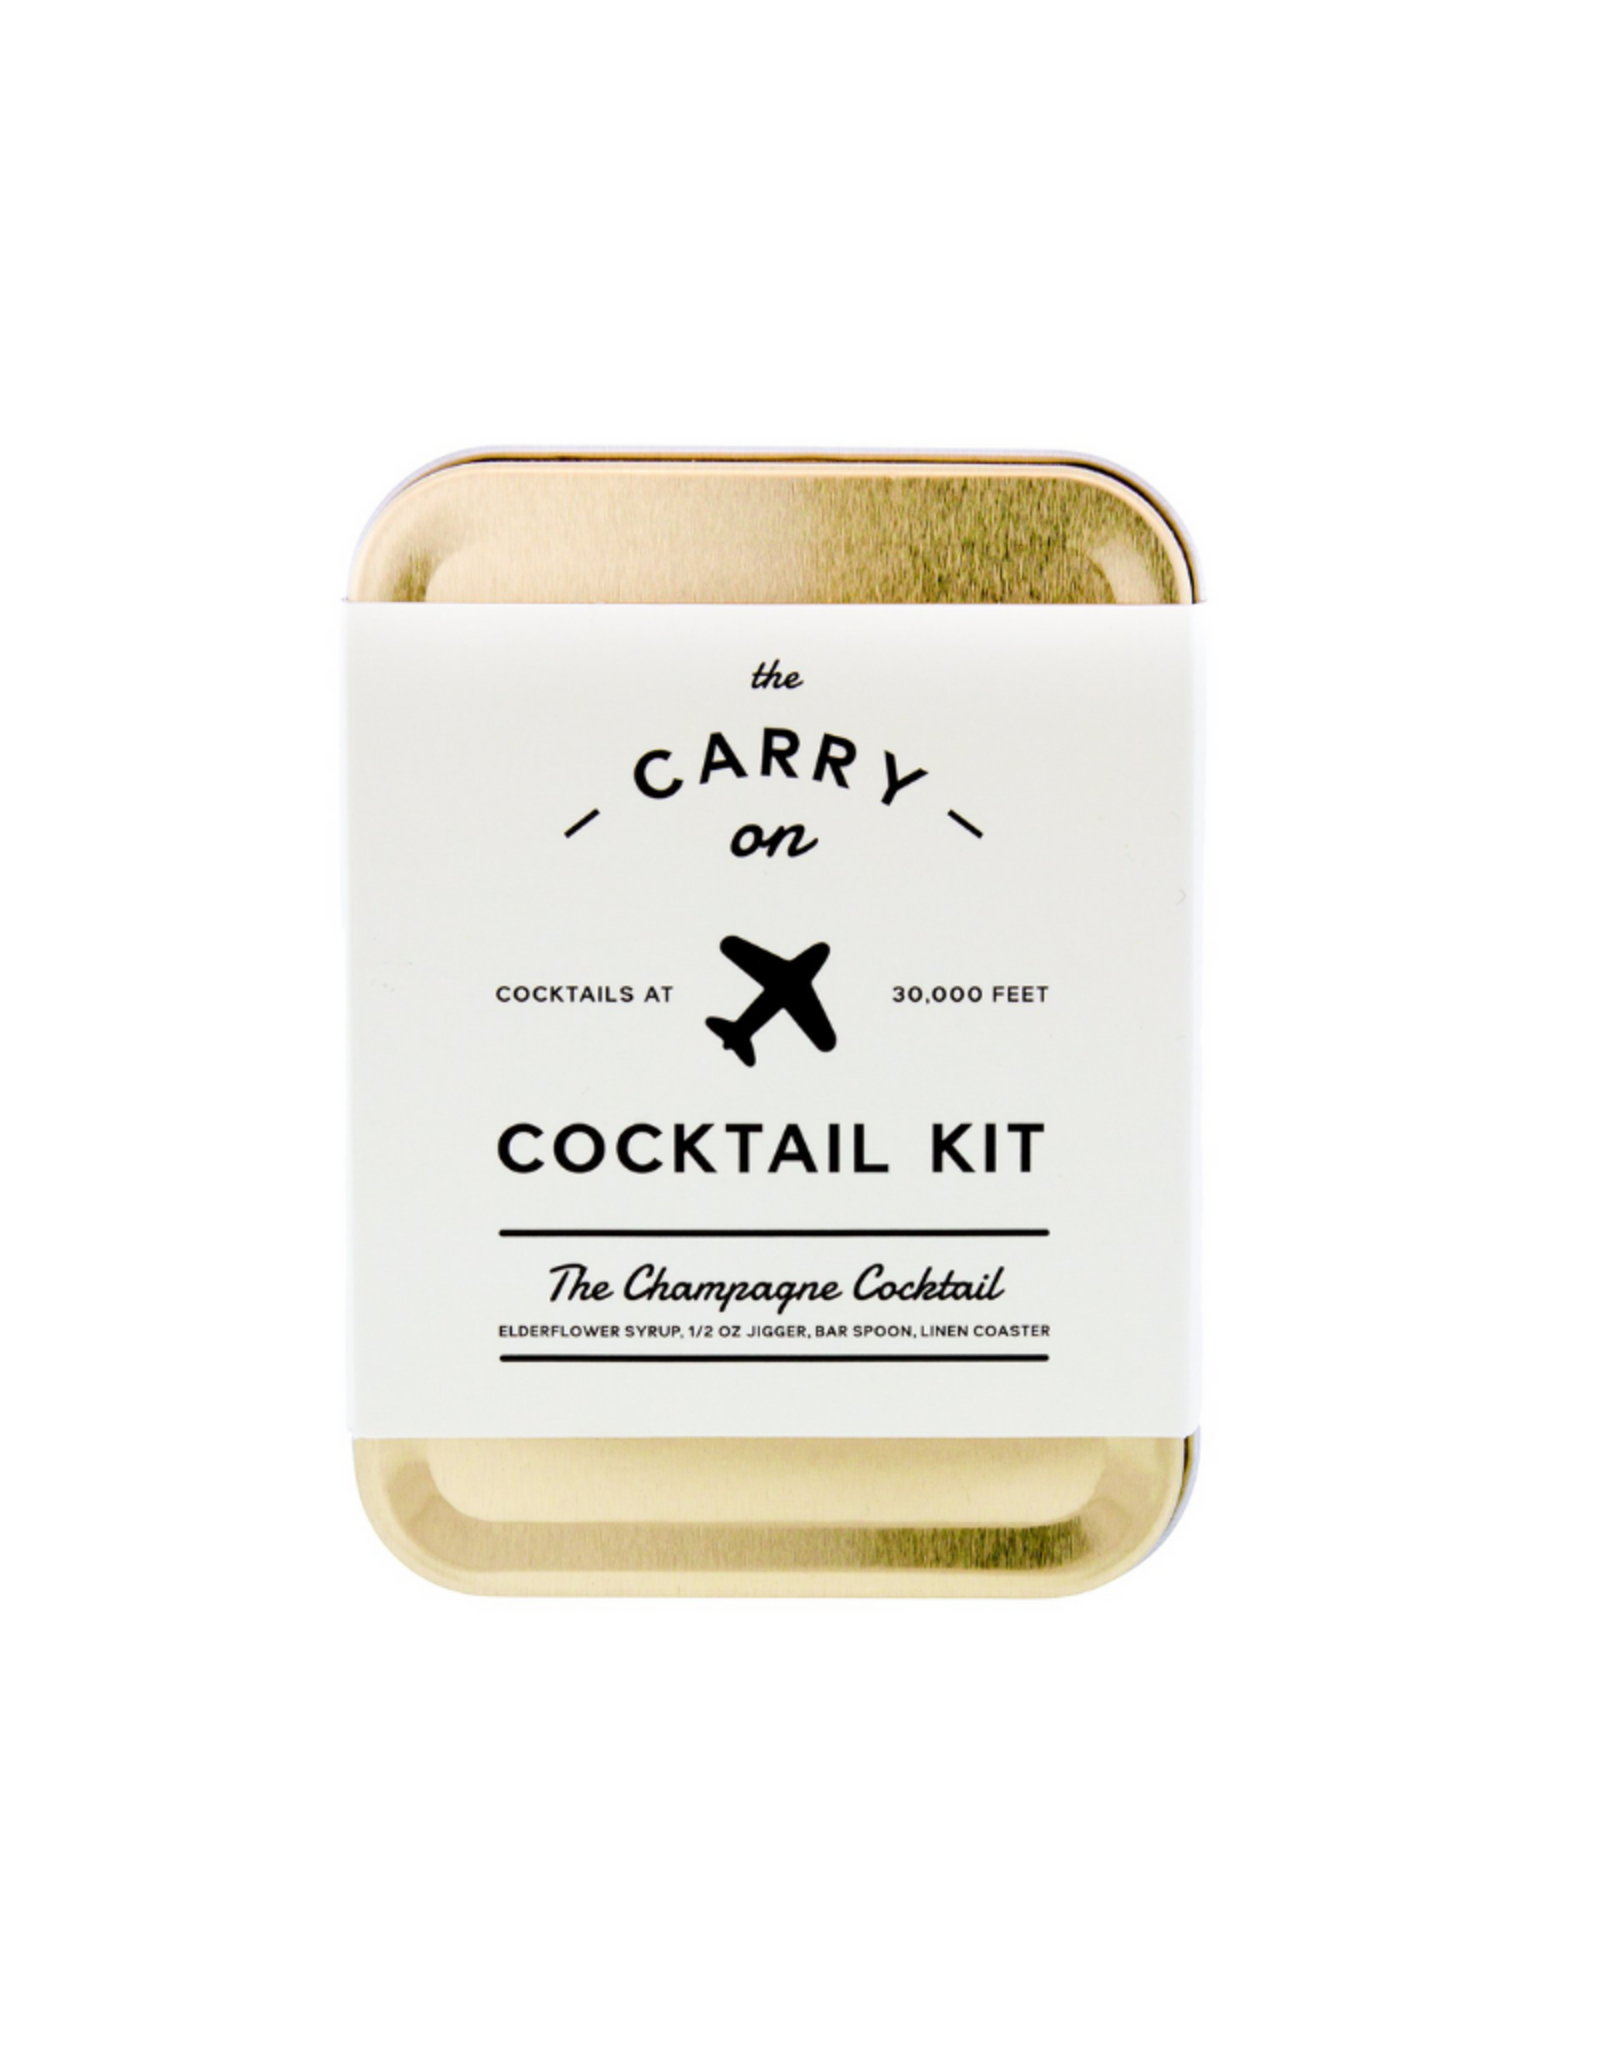 W&P Design Carry On Cocktail Kit - Champagne Cocktail